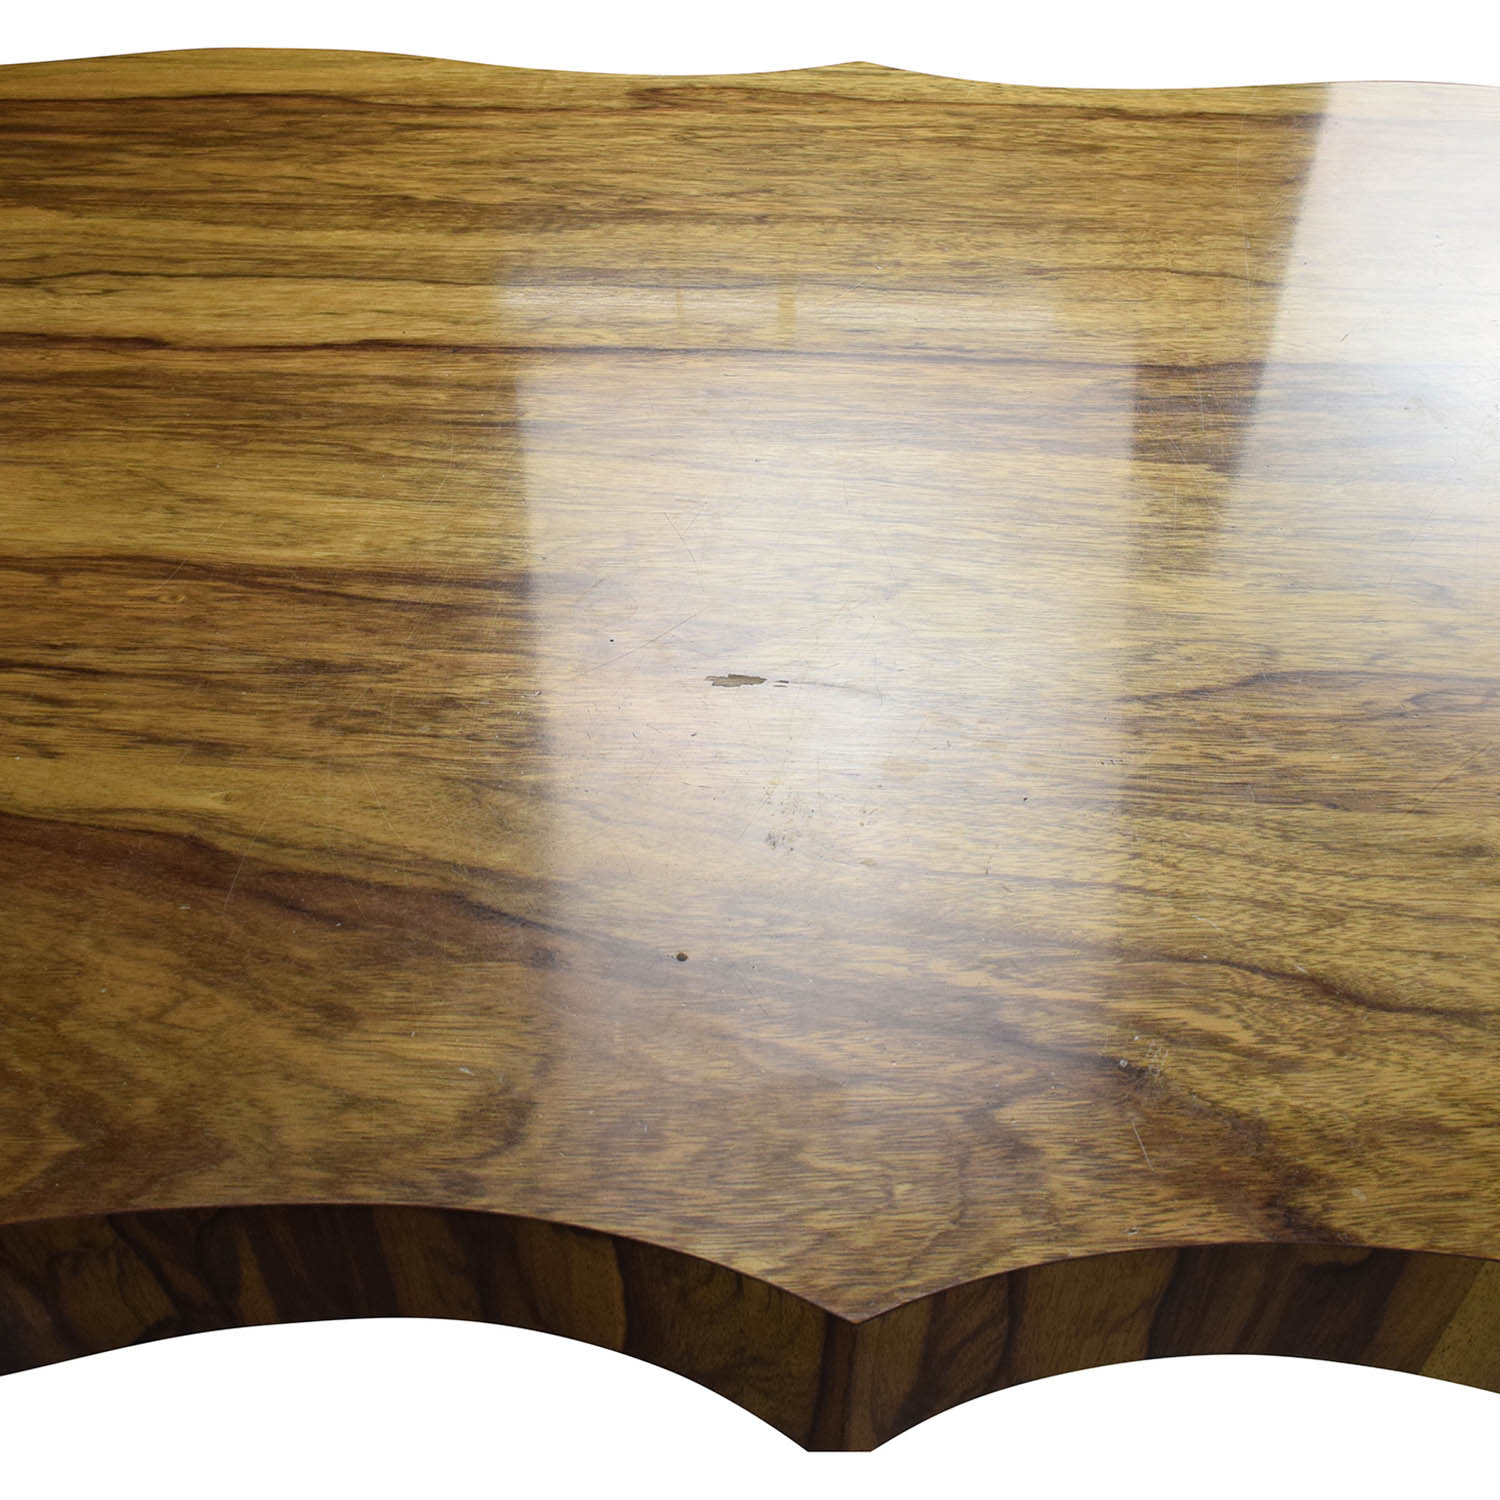 Theodore Alexander Keno Bros Theodore Alexander Keno Bros The Fine Point II Coffee Table for sale